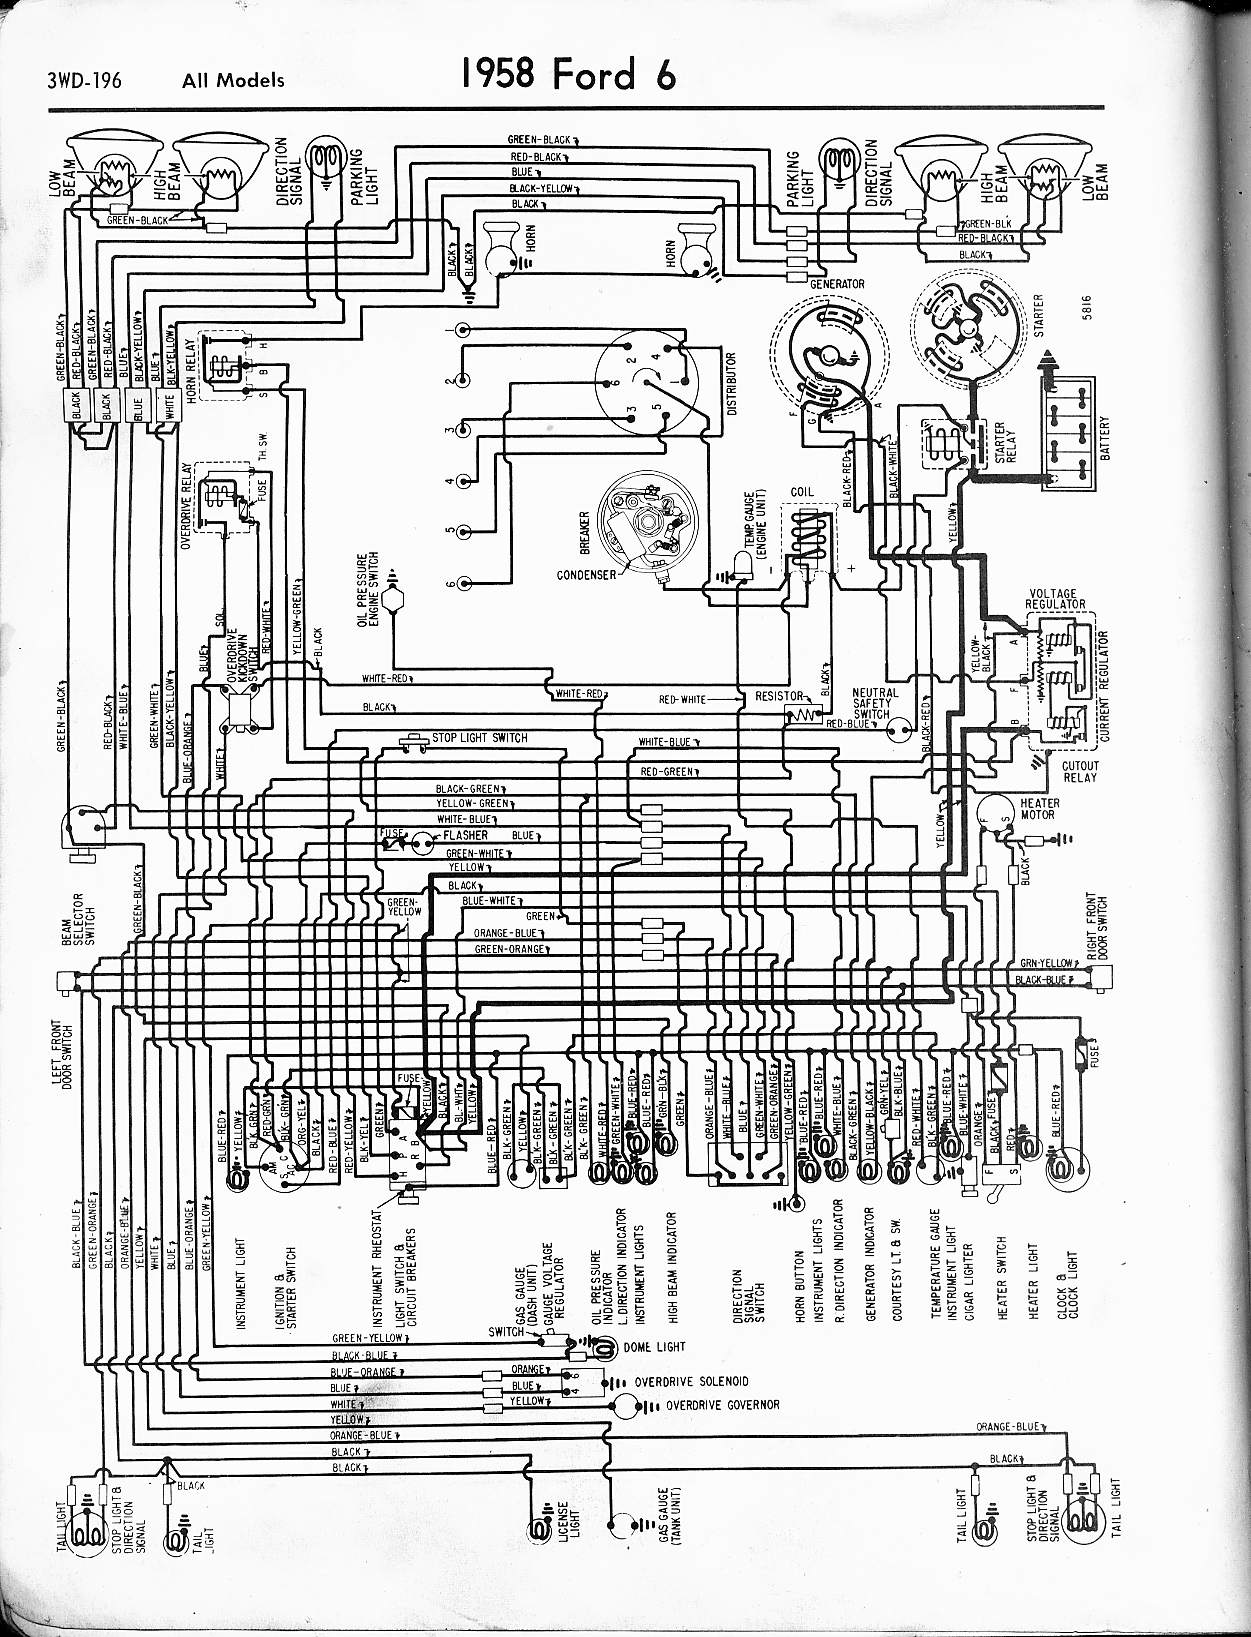 57 65 ford wiring diagrams 57 ford wiring 1958 6 cyl all models